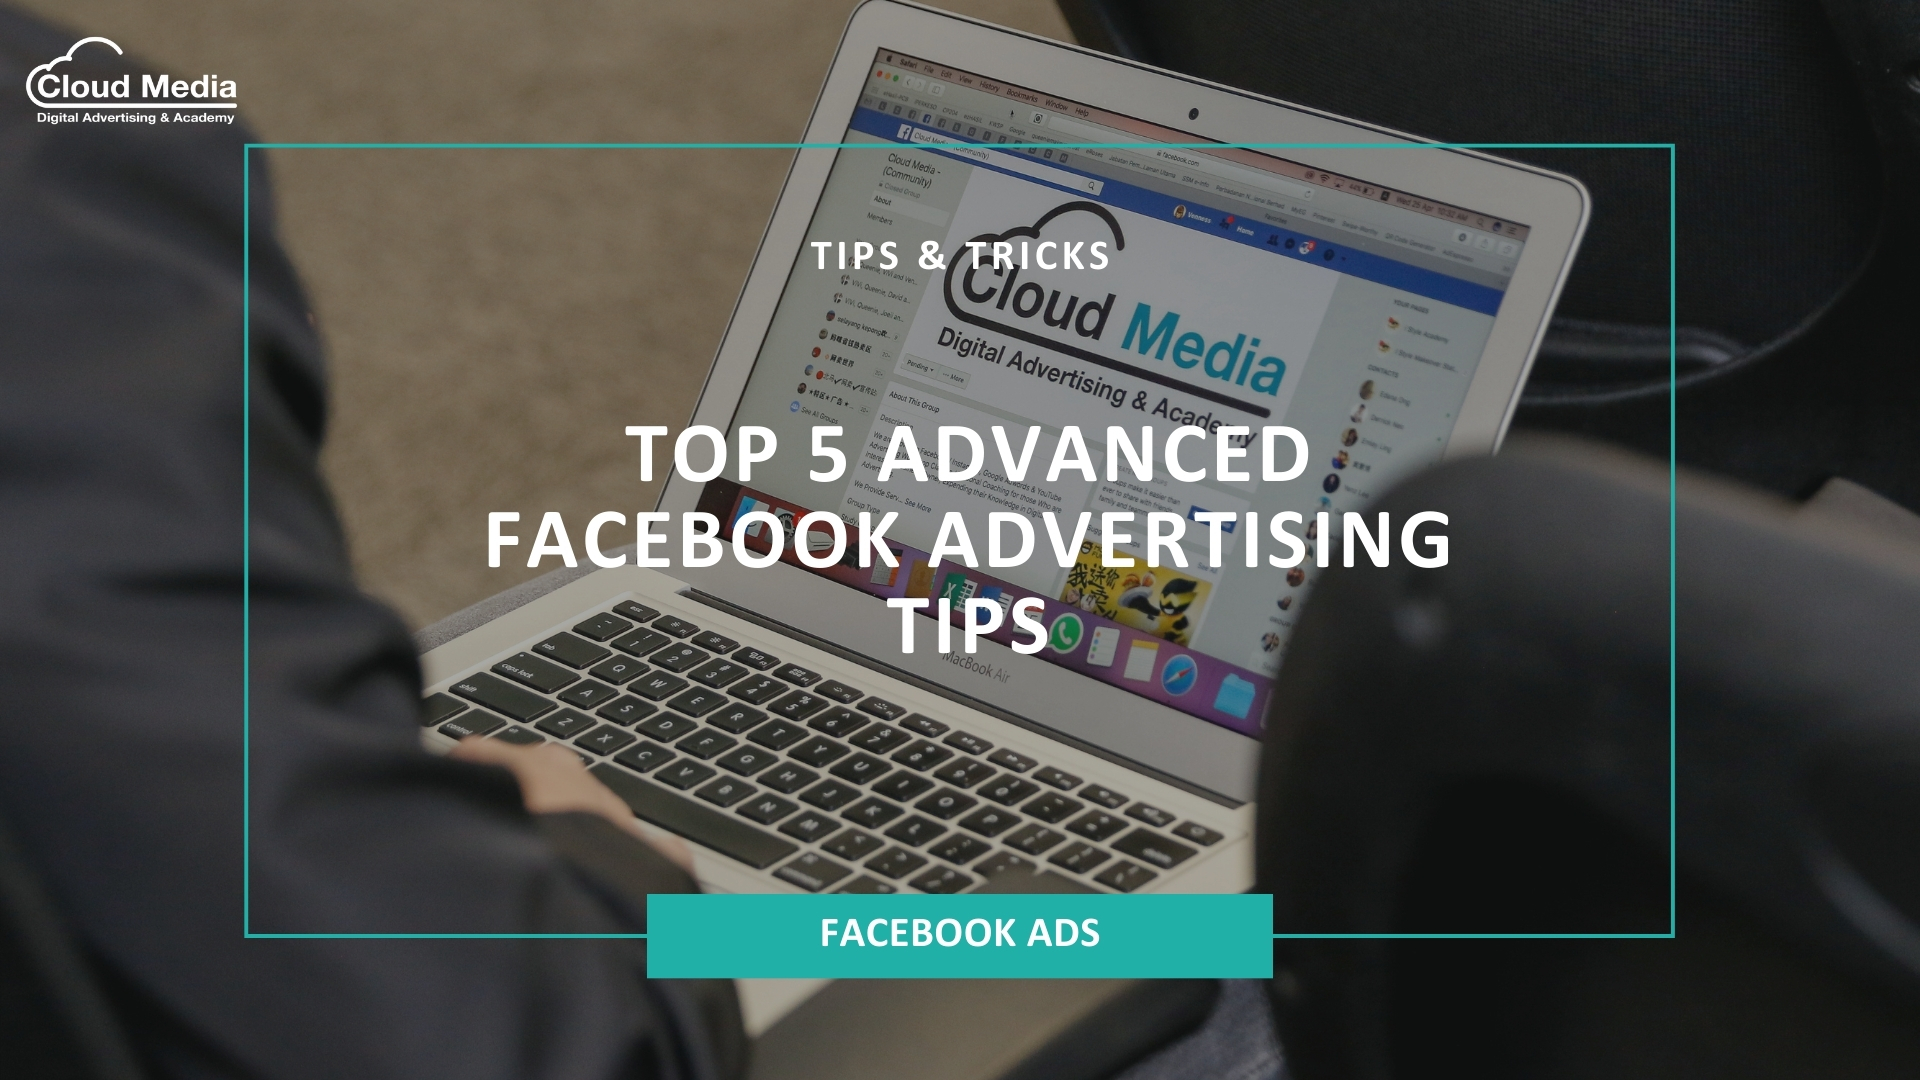 Top 5 Advanced Facebook Advertising Tips